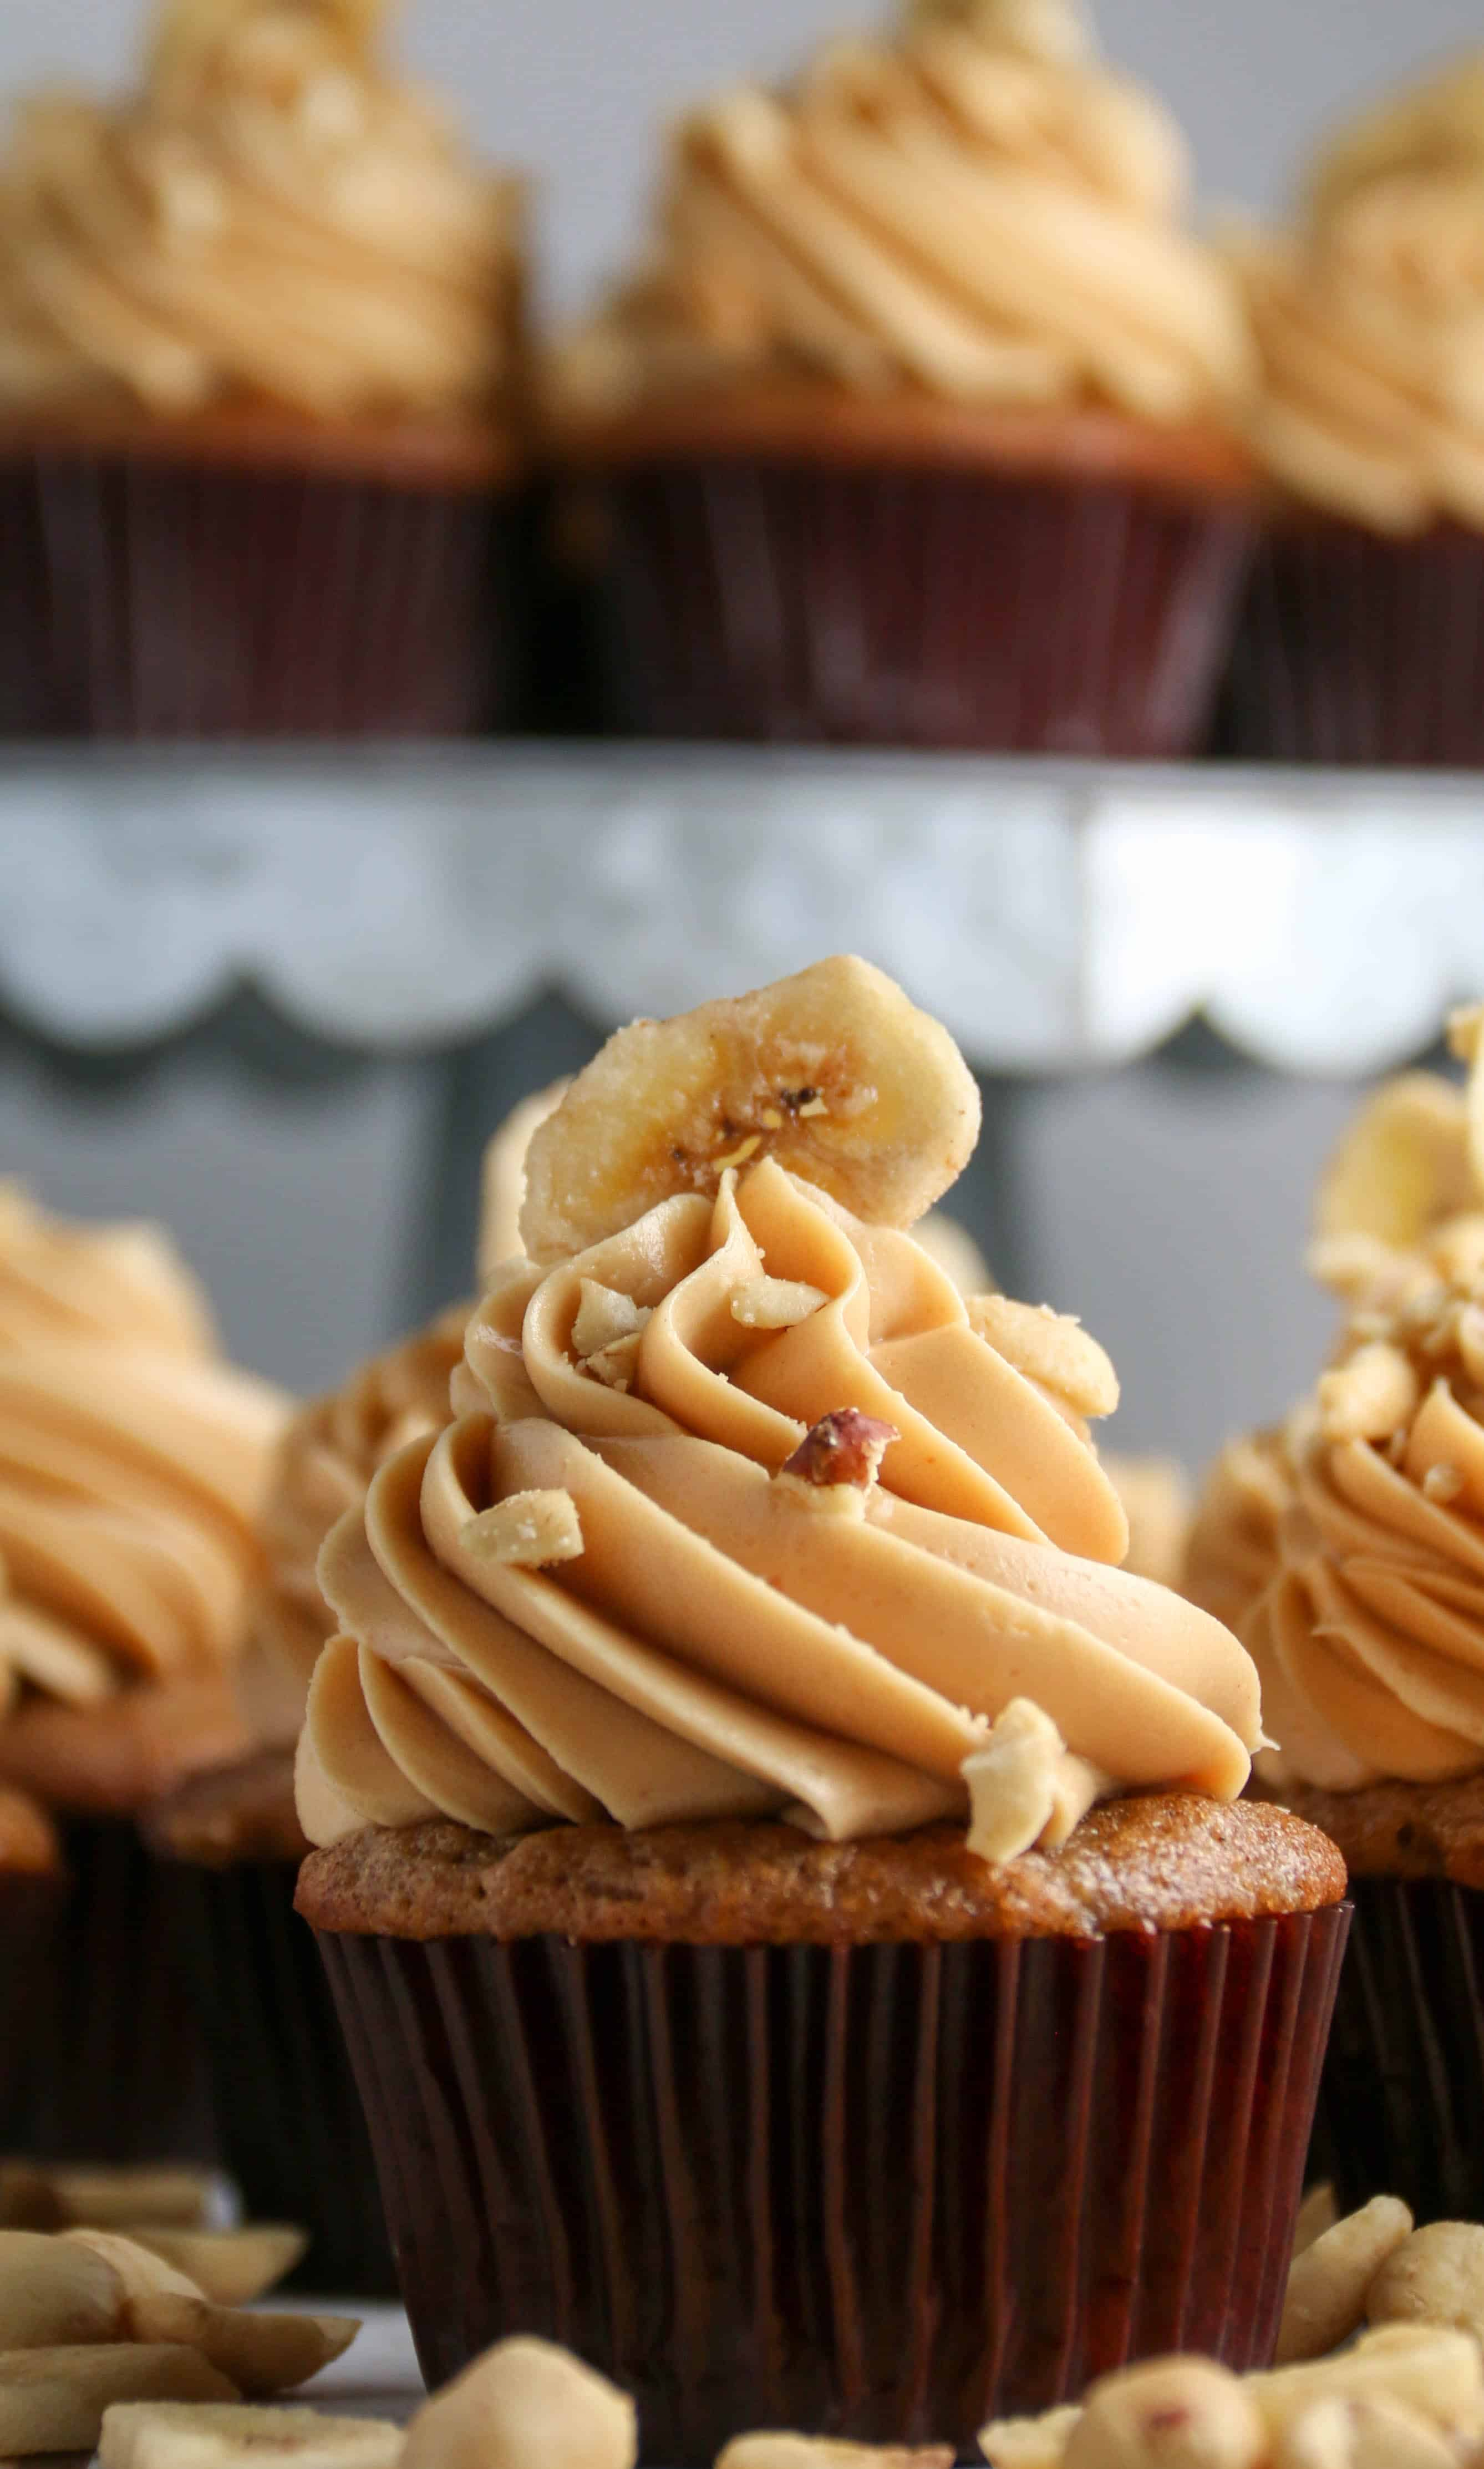 Banana cupcake with peanut butter frosting and cupcakes on a cake stand behind it